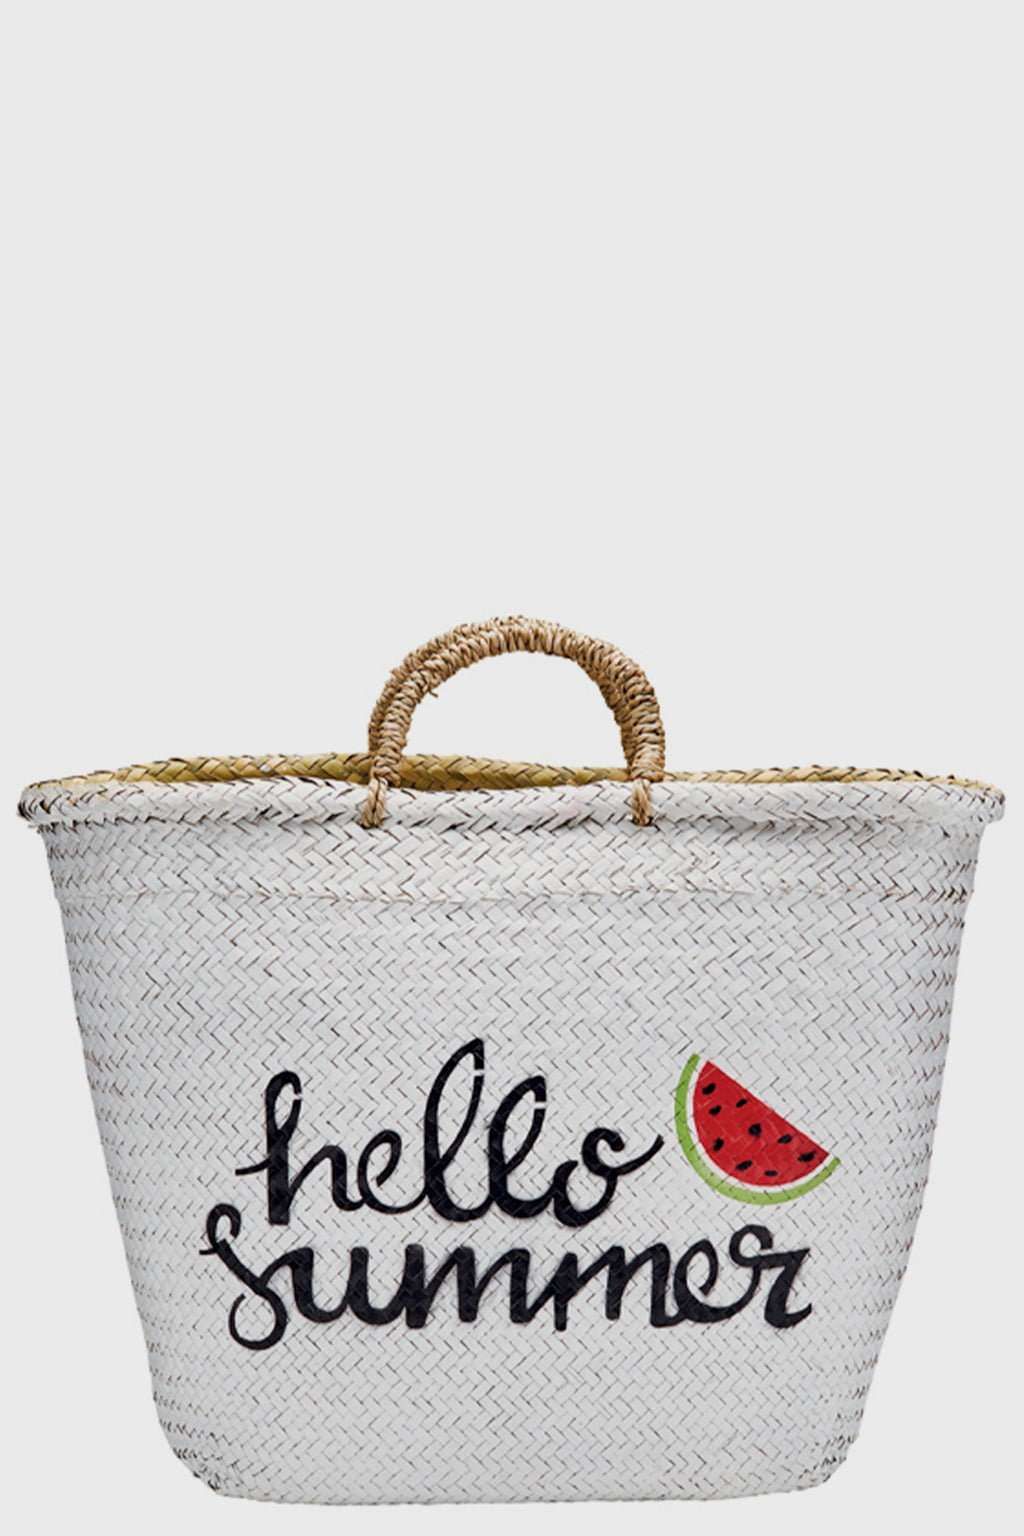 BaySky woven seagrass with painted exterior hello summer-TOTE-BaySky